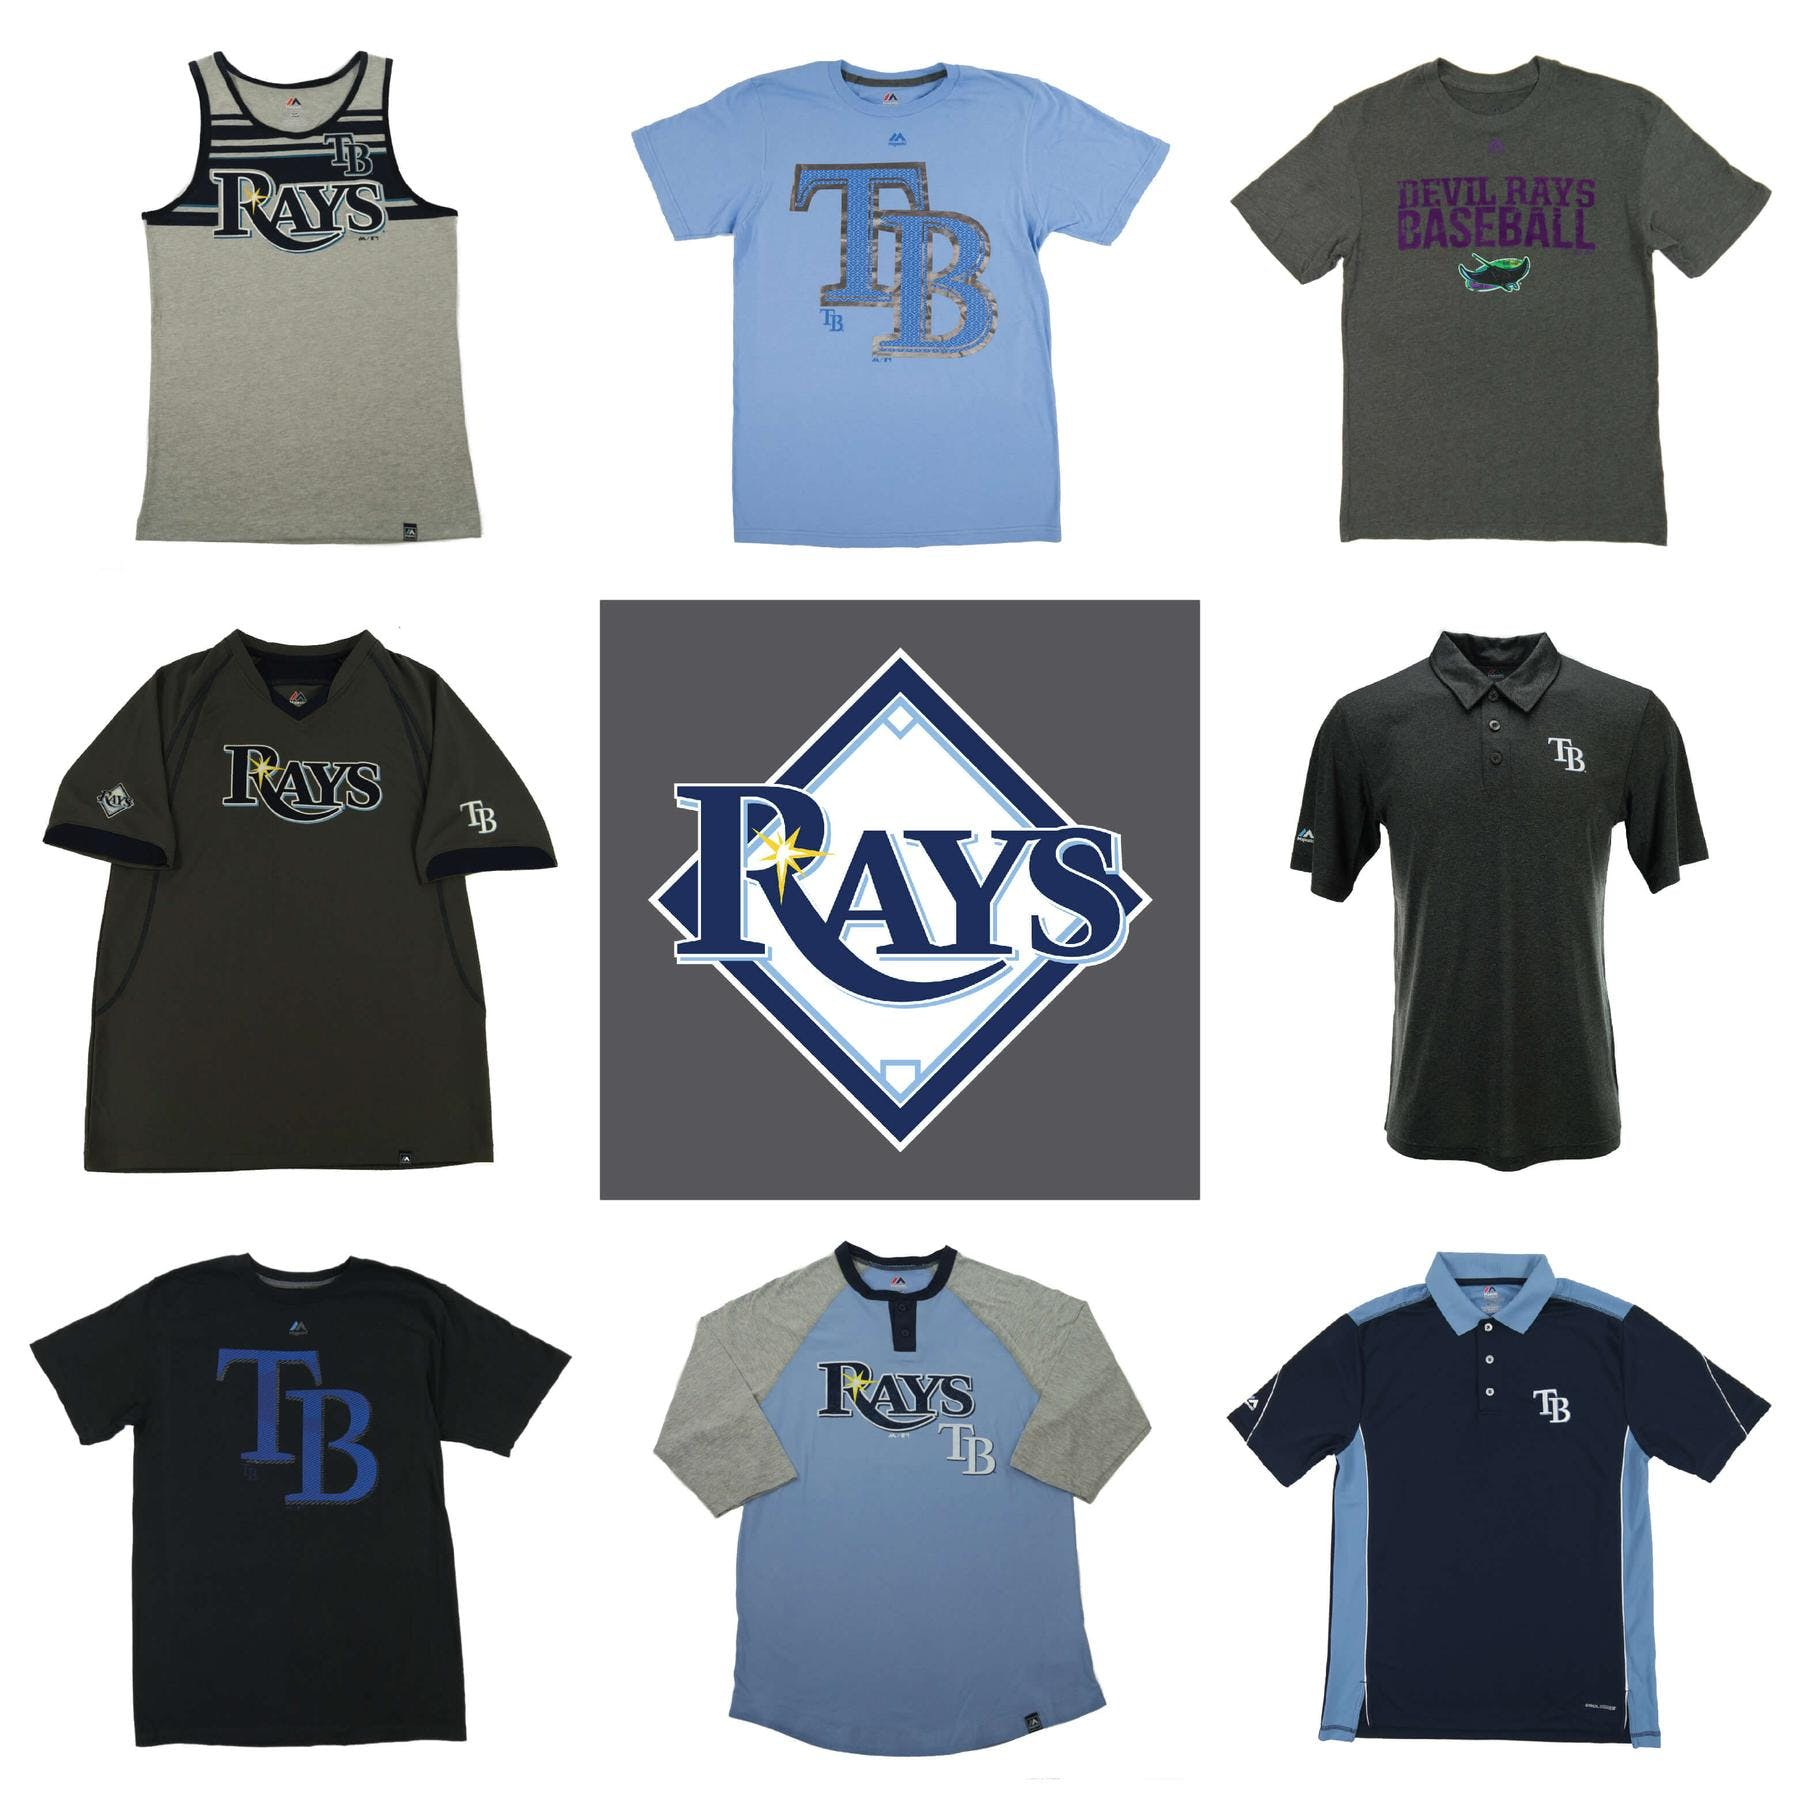 watch 6f85d 716ff Tampa Bay Rays Officially Licensed MLB Apparel Liquidation - 1,590+ Items,  $55,000+ SRP!